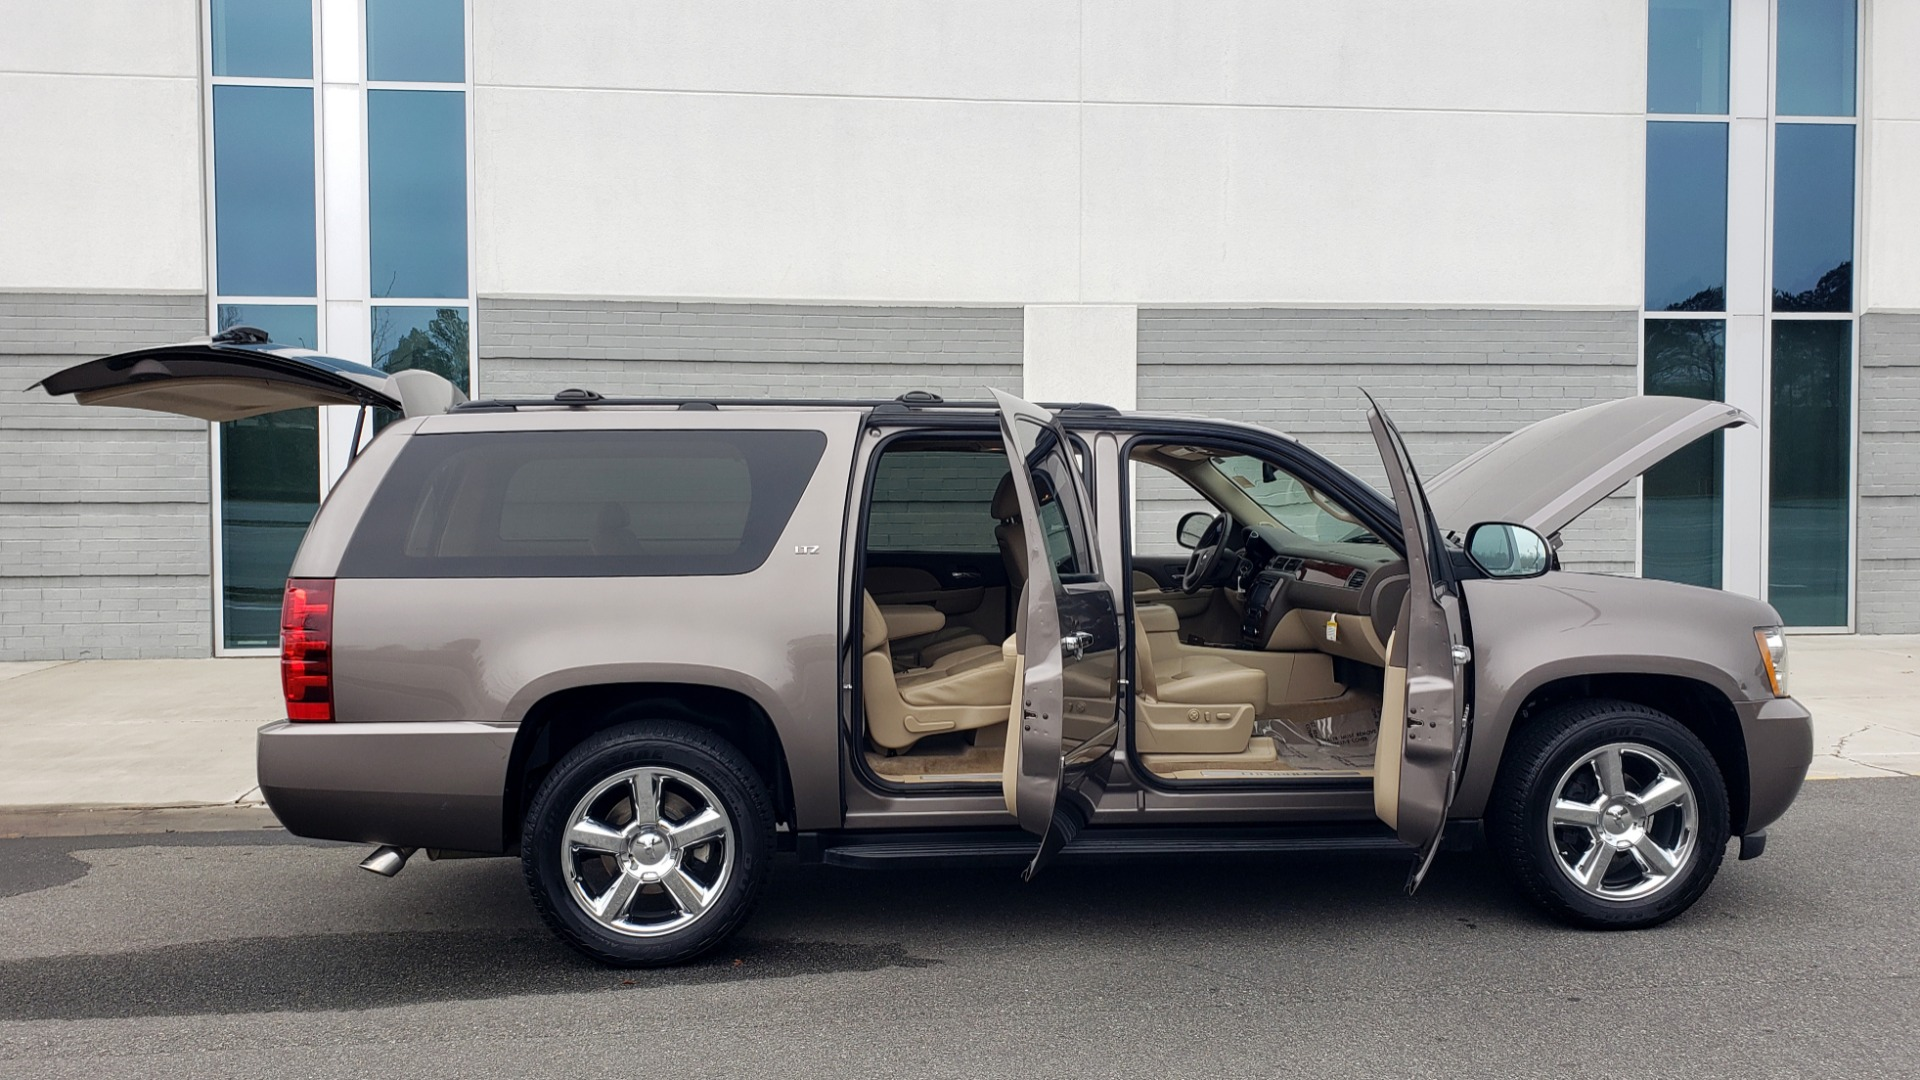 Used 2014 Chevrolet SUBURBAN LTZ / 4WD / ENTERTAINMENT / NAV / SUNROOF / TRAILER PKG for sale Sold at Formula Imports in Charlotte NC 28227 12